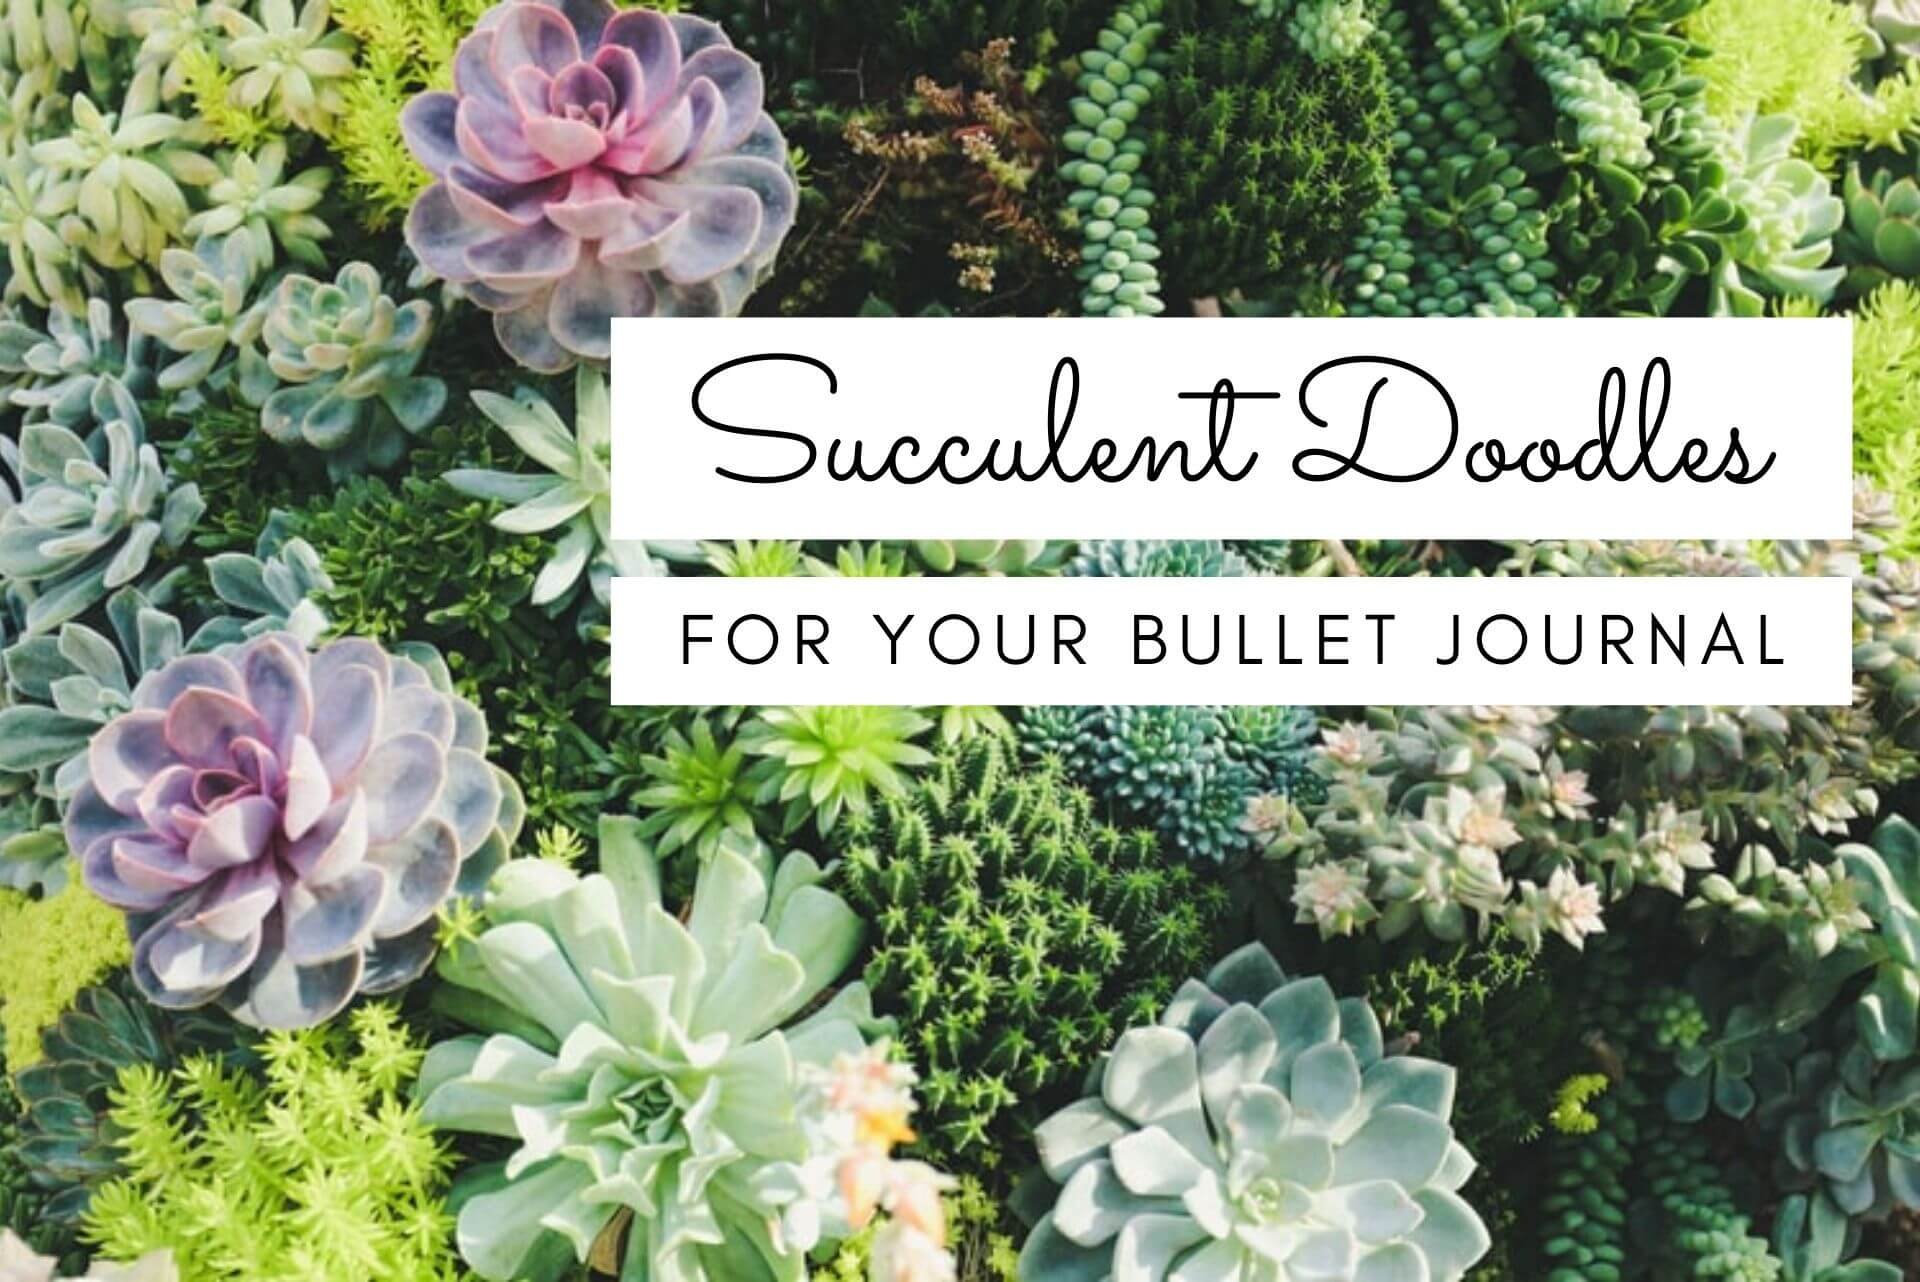 bullet journal succulent doodles, how to draw succulents, succulent doodles